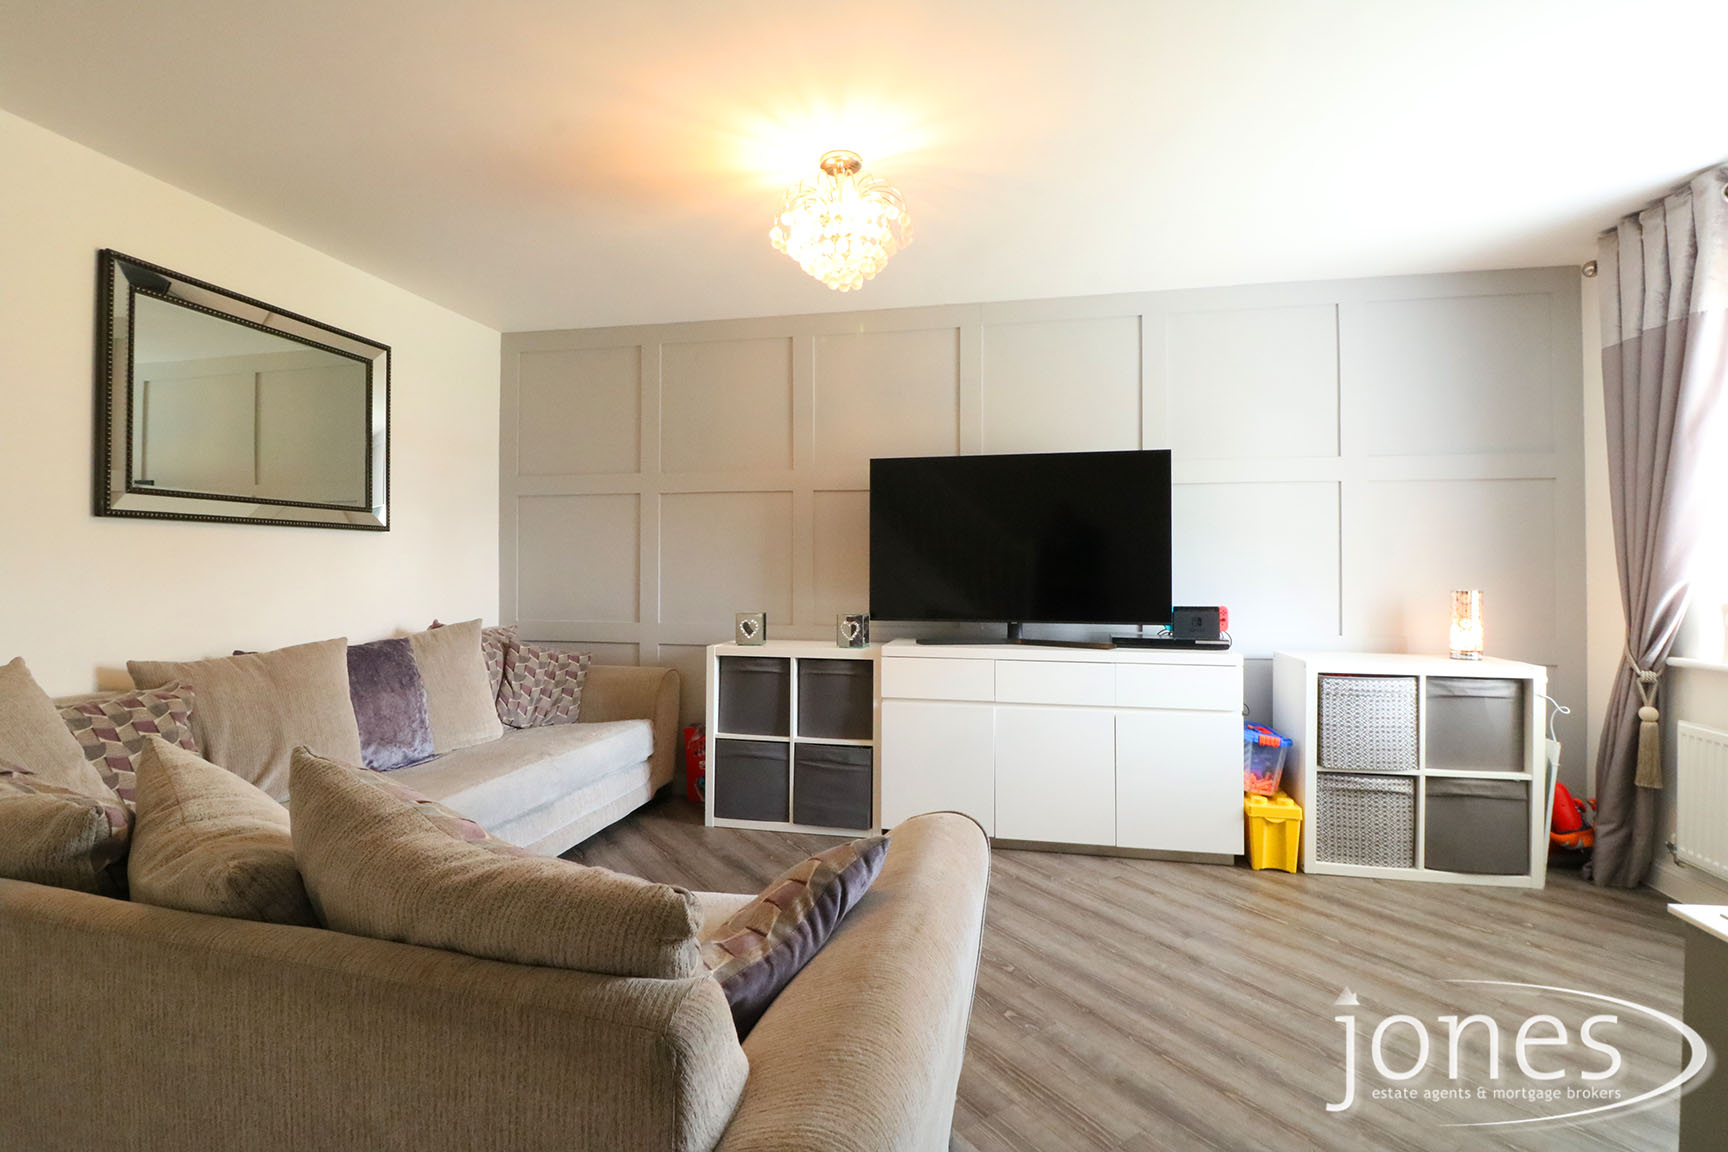 Home for Sale Let - Photo 03 Aristotle Drive, Stockton on Tees,  TS19 8GH